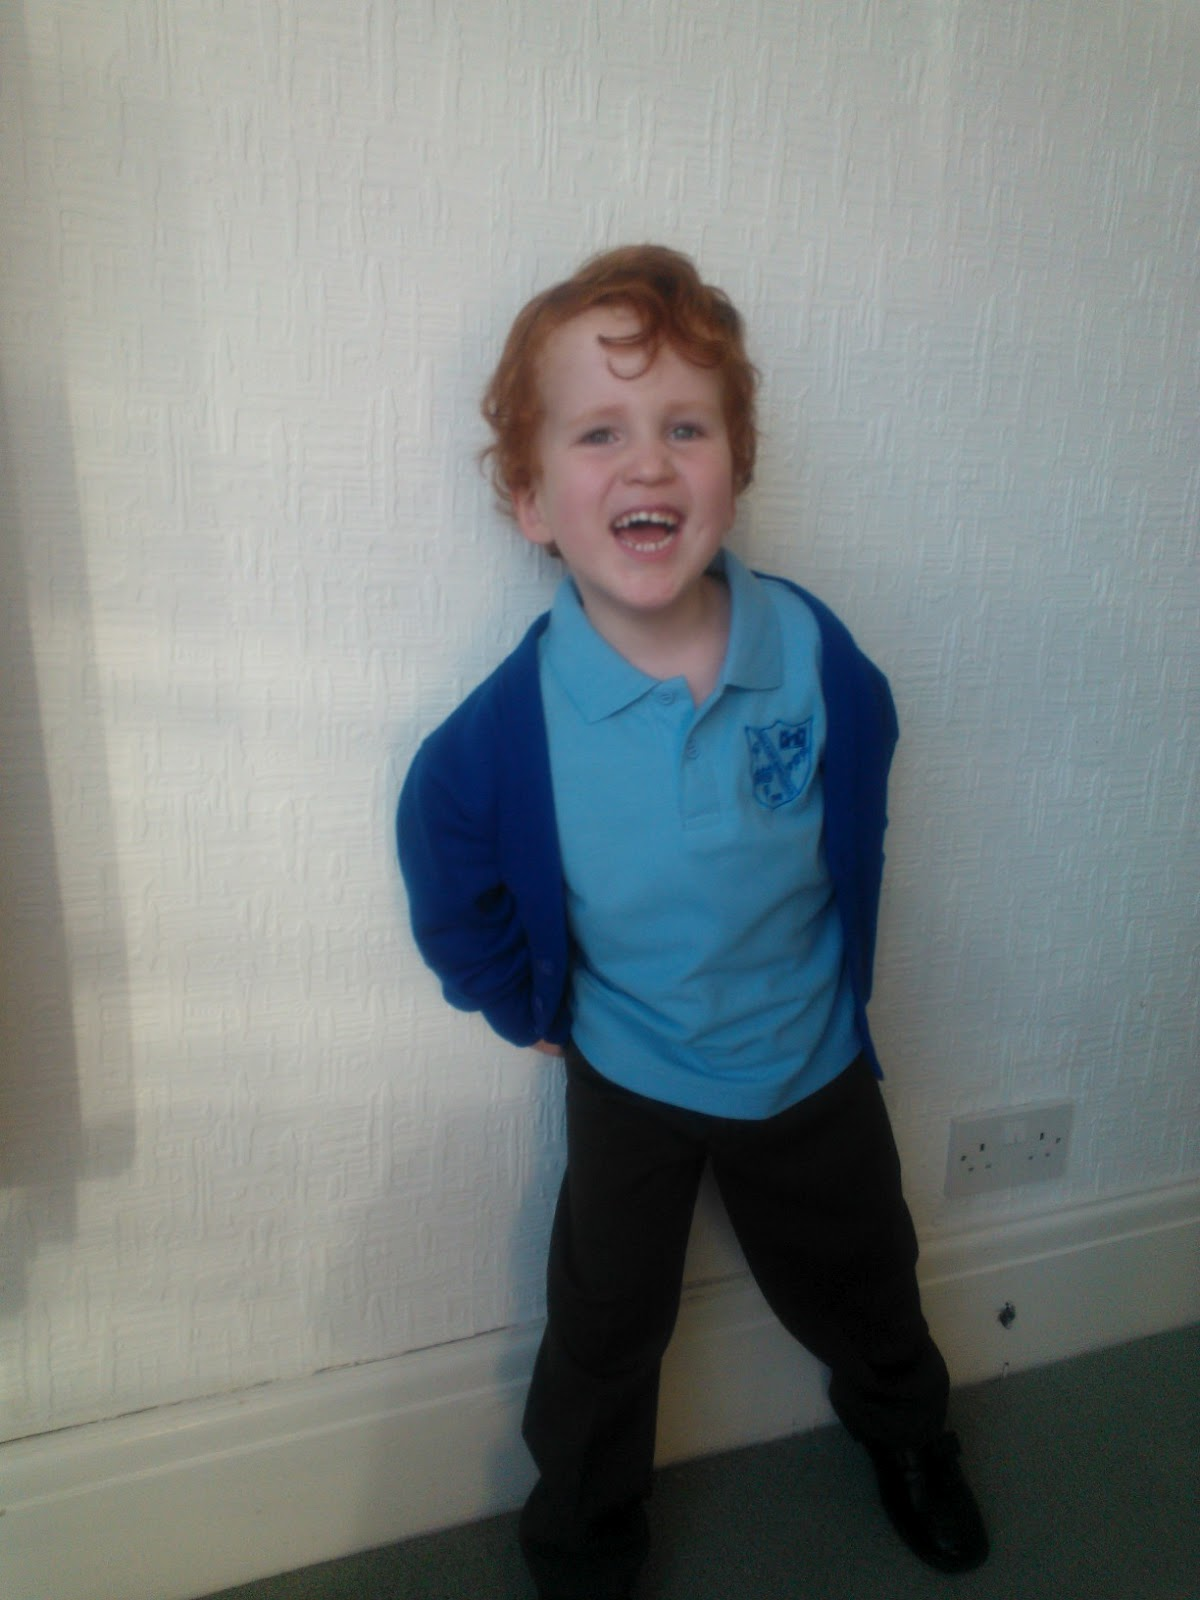 Ieuan in school uniform - the importance of wearing school uniform